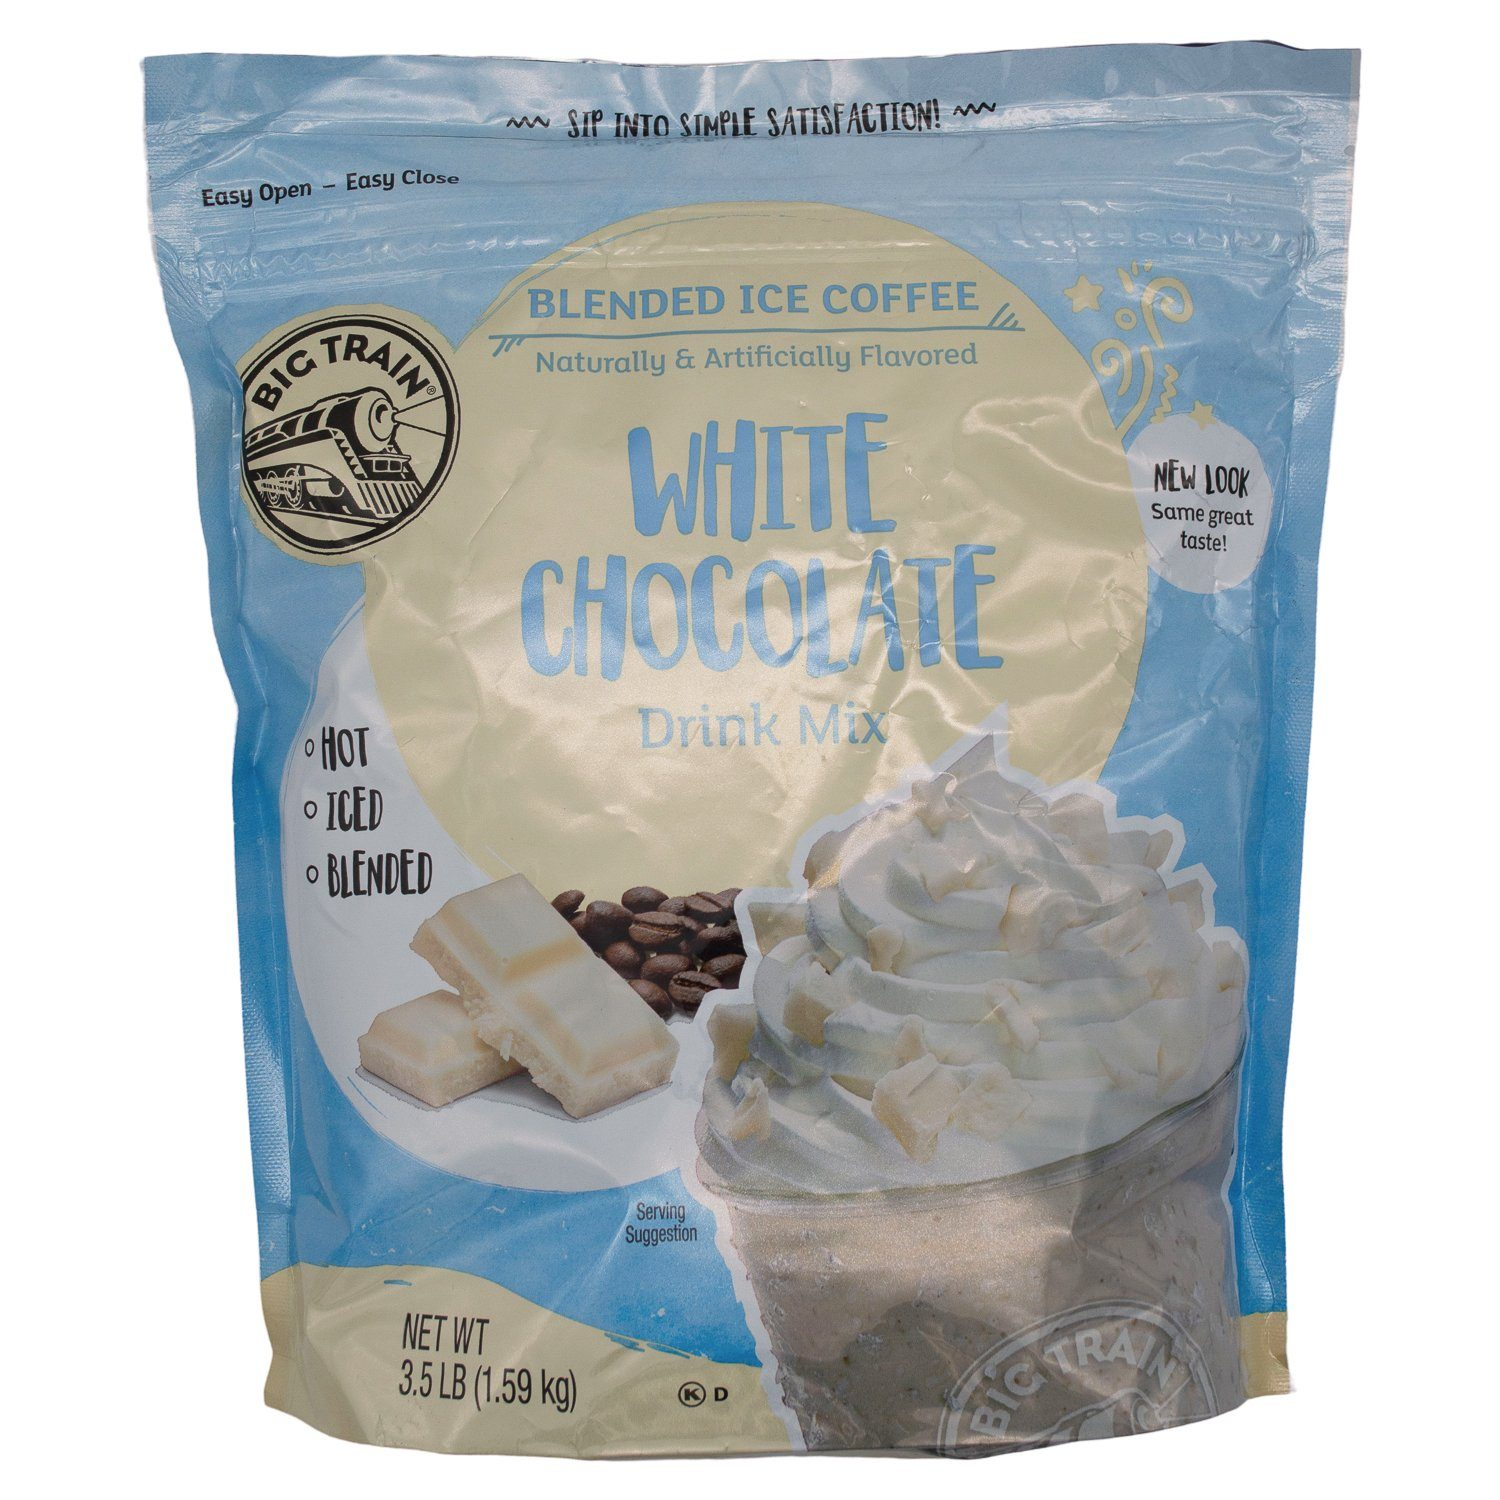 Big Train Blended Ice Coffee Big Train White Chocolate 3.5 Pound Sealable